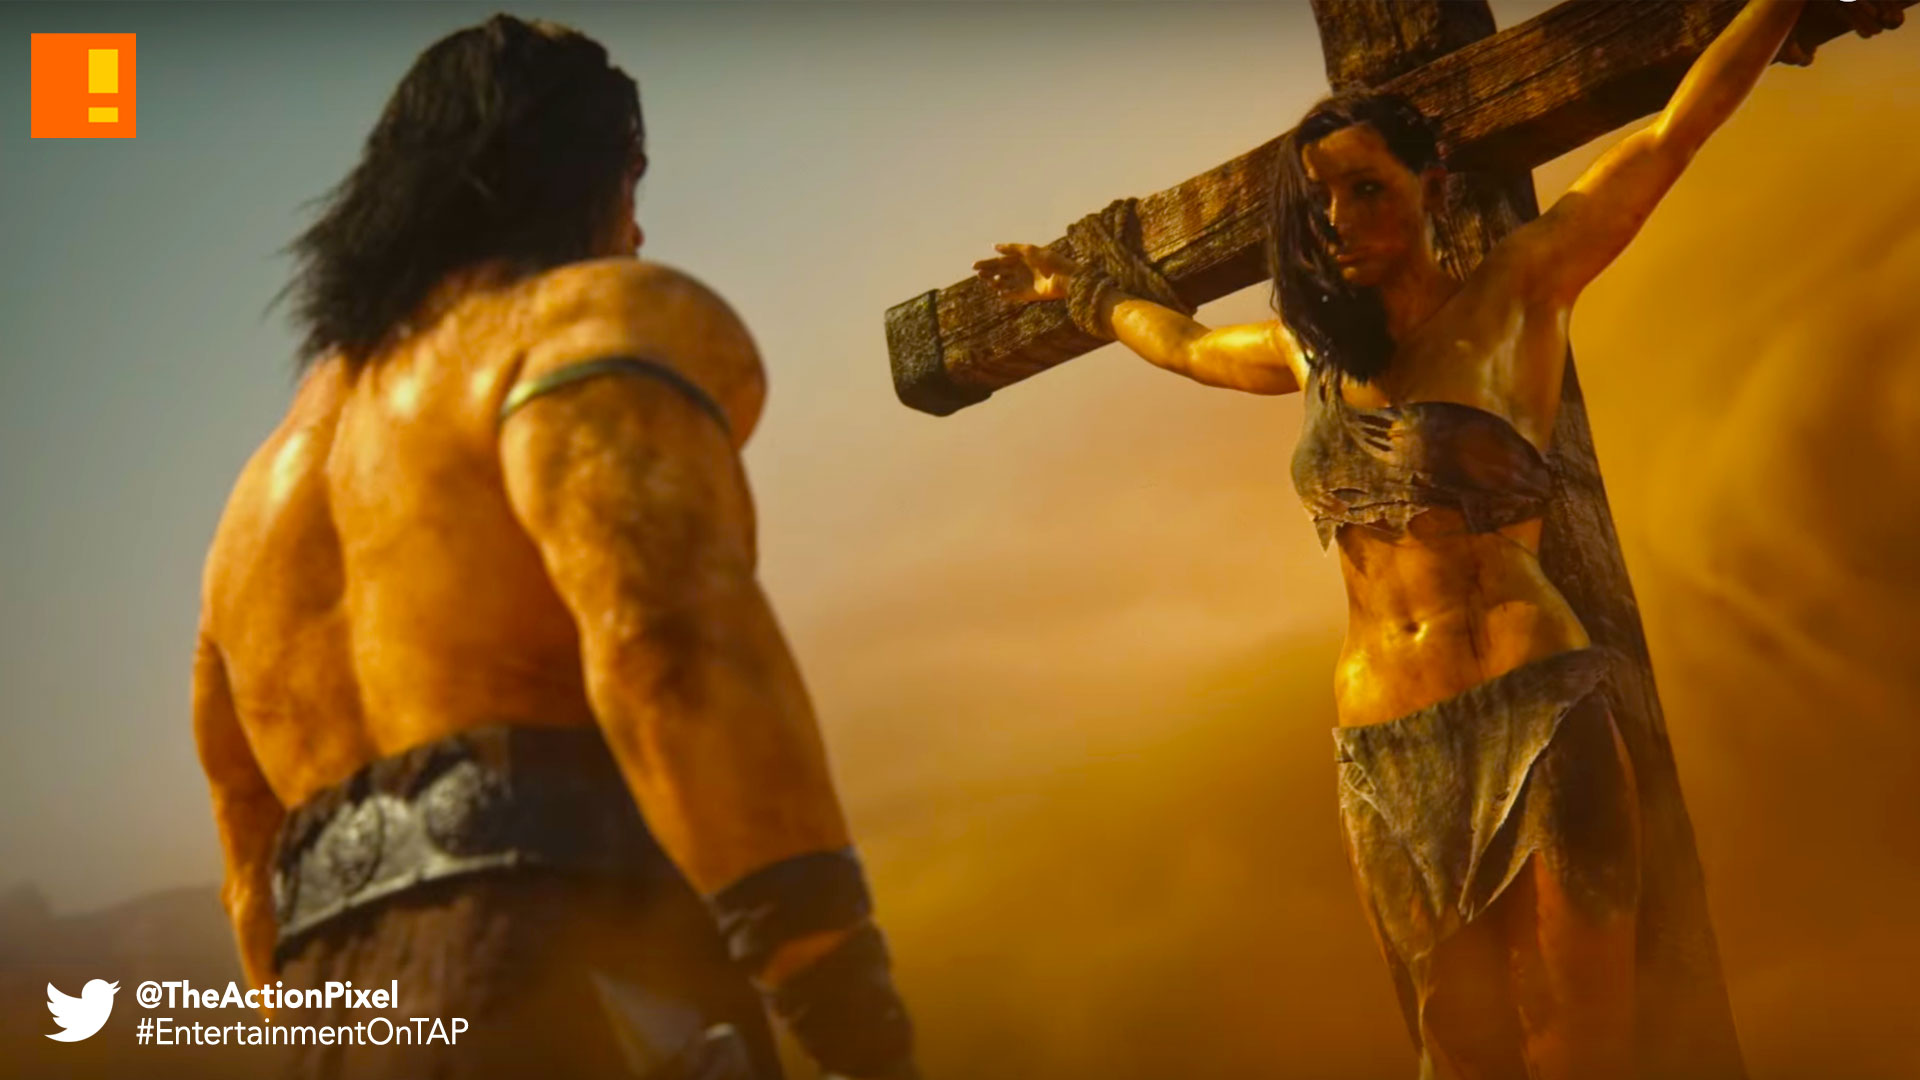 conan exiles, funcom, the action pixel, @theactionpixel, opening cinematic trailer, cinematic, trailer, conan, savage, barbarian, conan the barbarian, sandbox, open world,